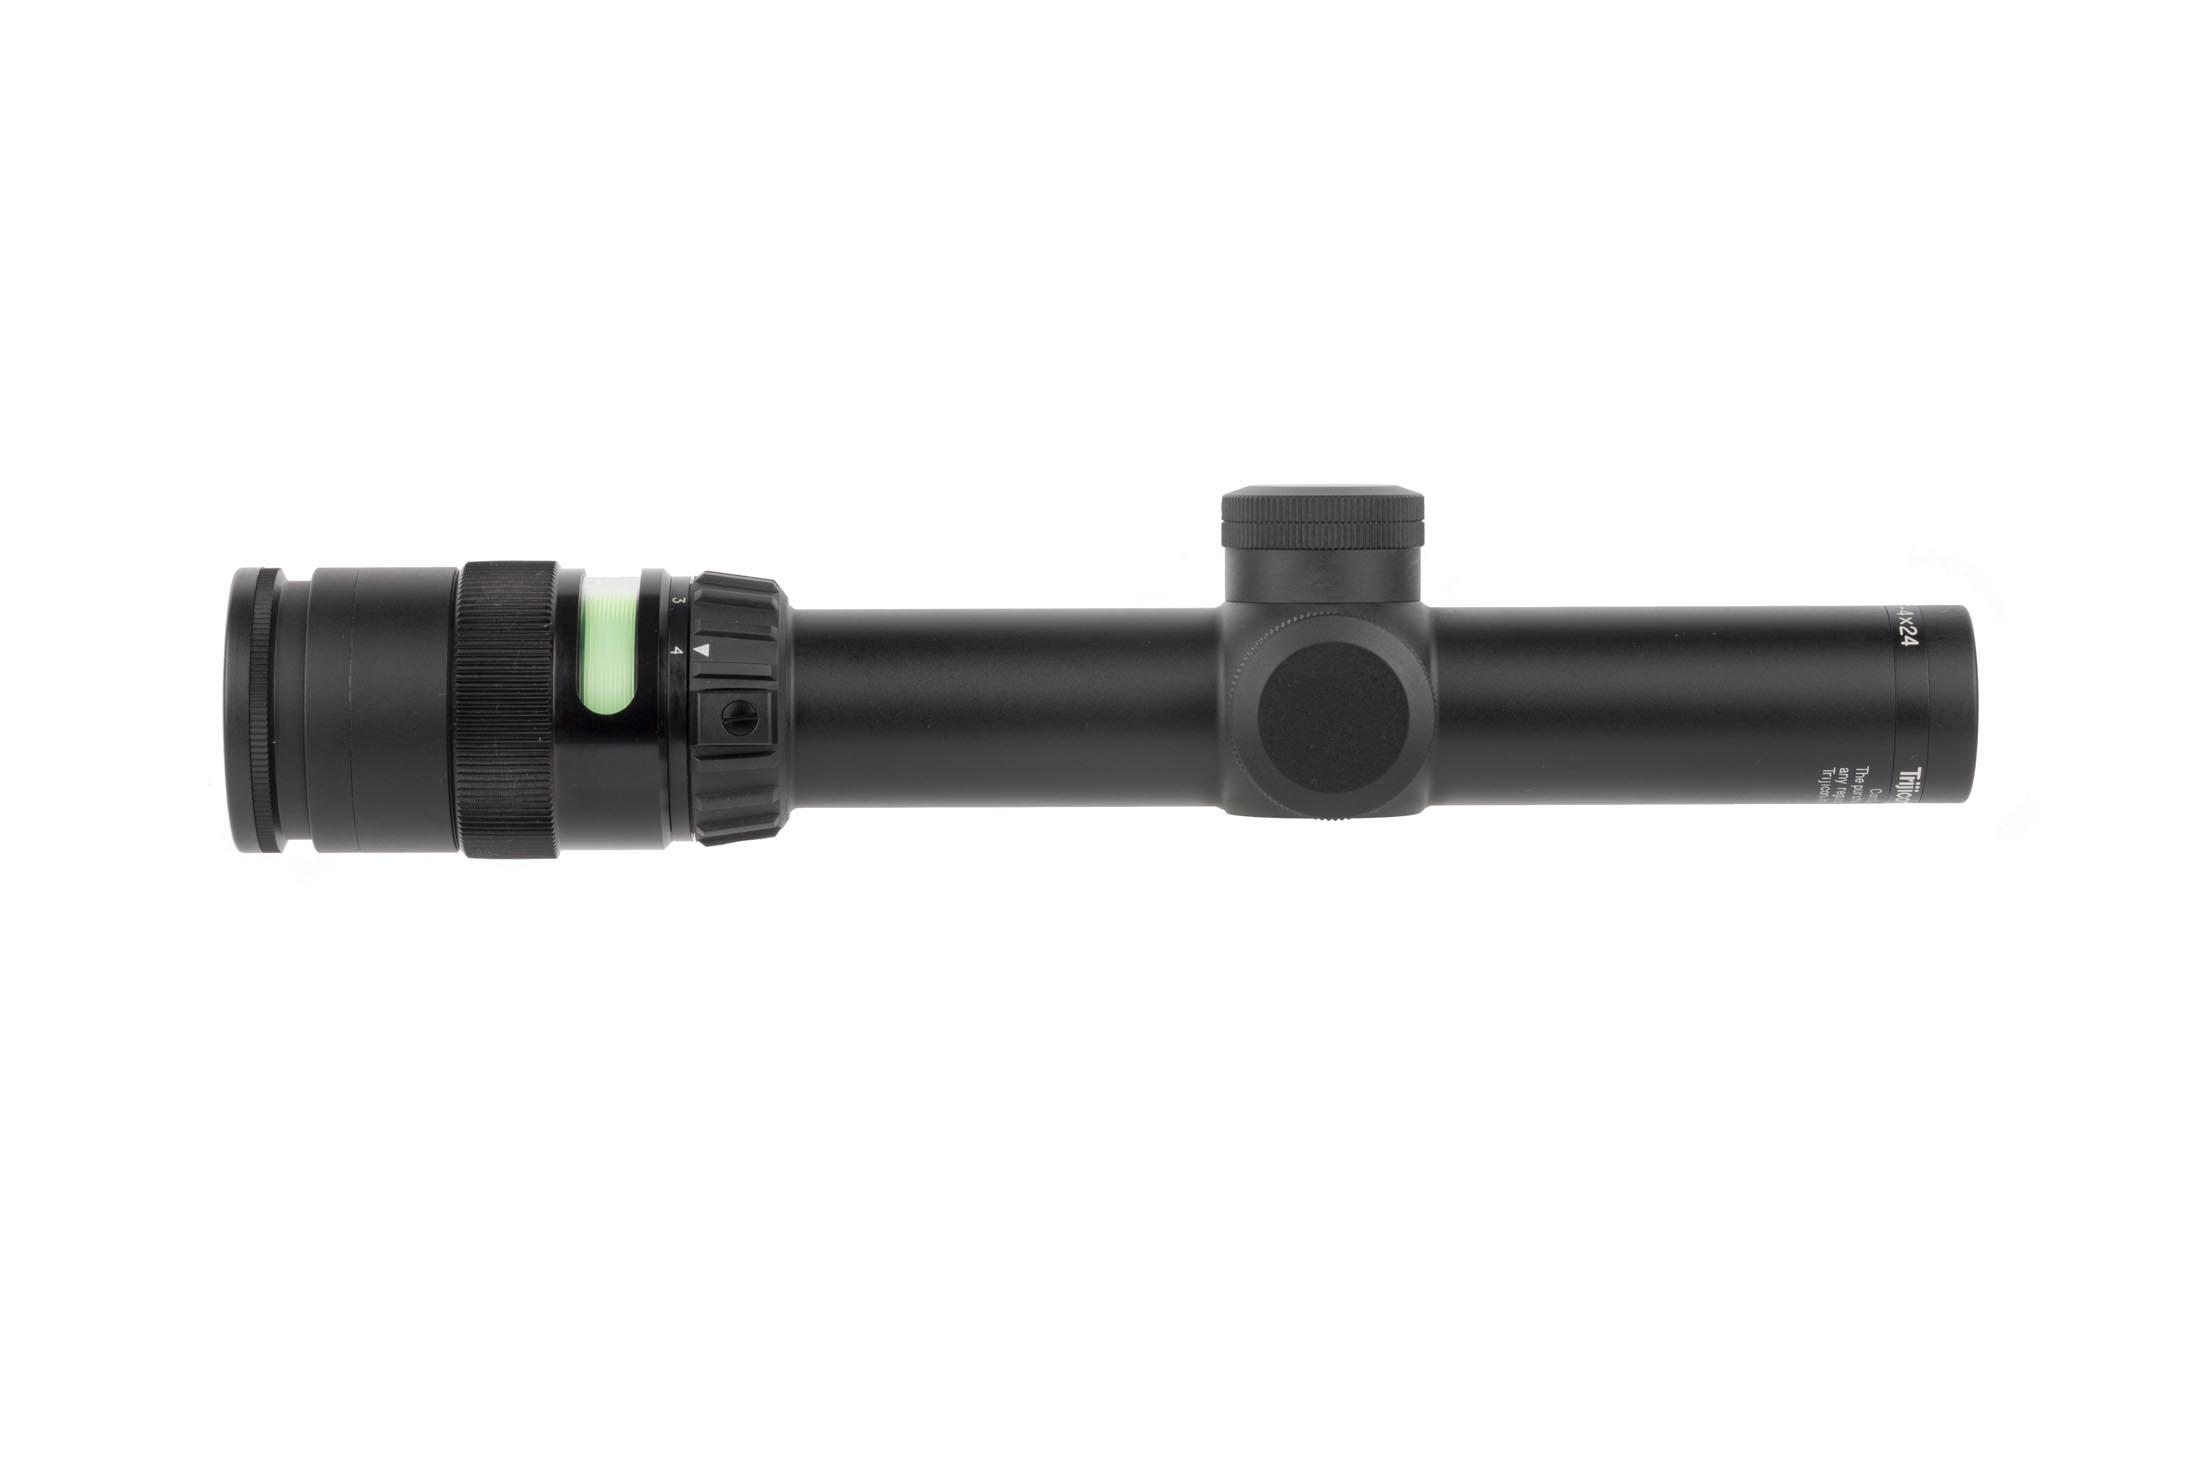 Trijicon TR24 AccuPoint 1-4x24mm rifle scope features battery free Green illumination, triangle post reticle, and 30mm main tube